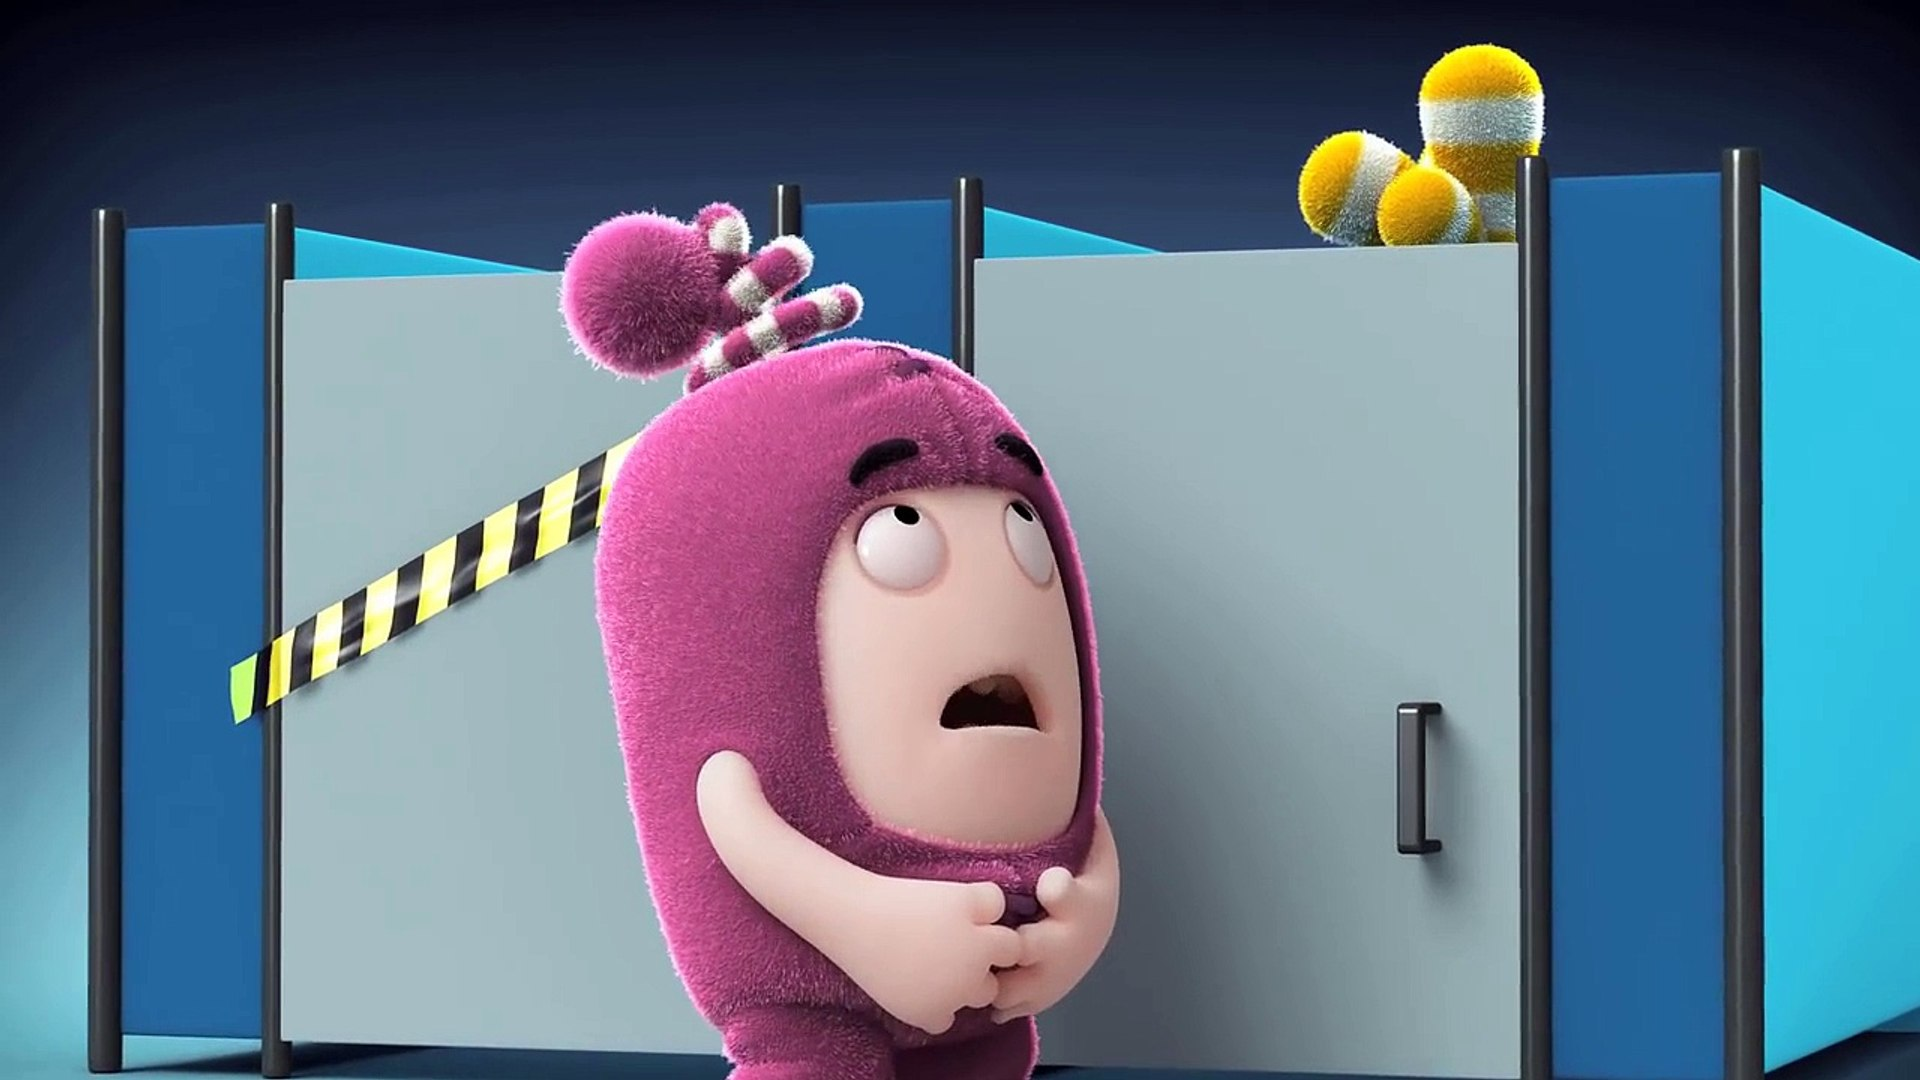 Oddbods _ Newt and the Toilet Watch tv series movies 2017 Watch tv series movies 2017